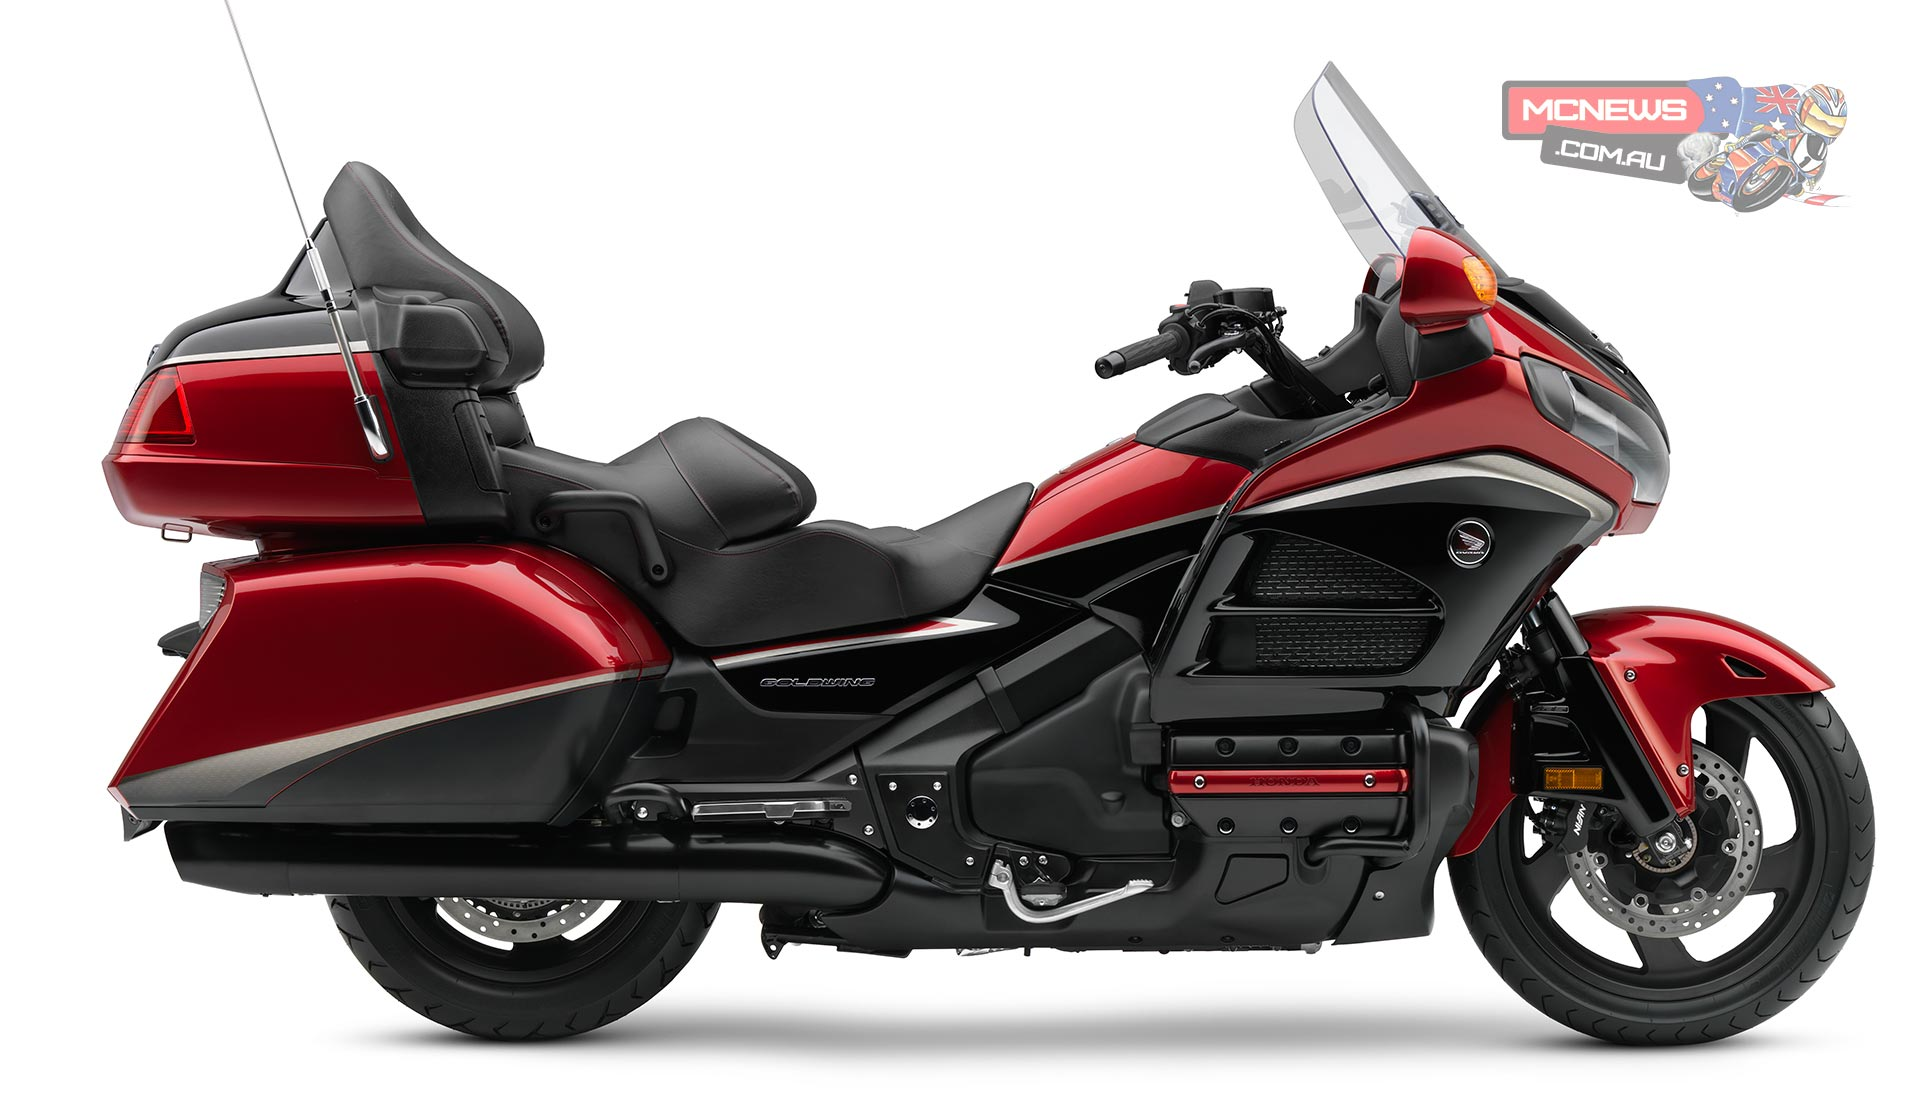 Honda Gold Wing F6C 2015 images #83212